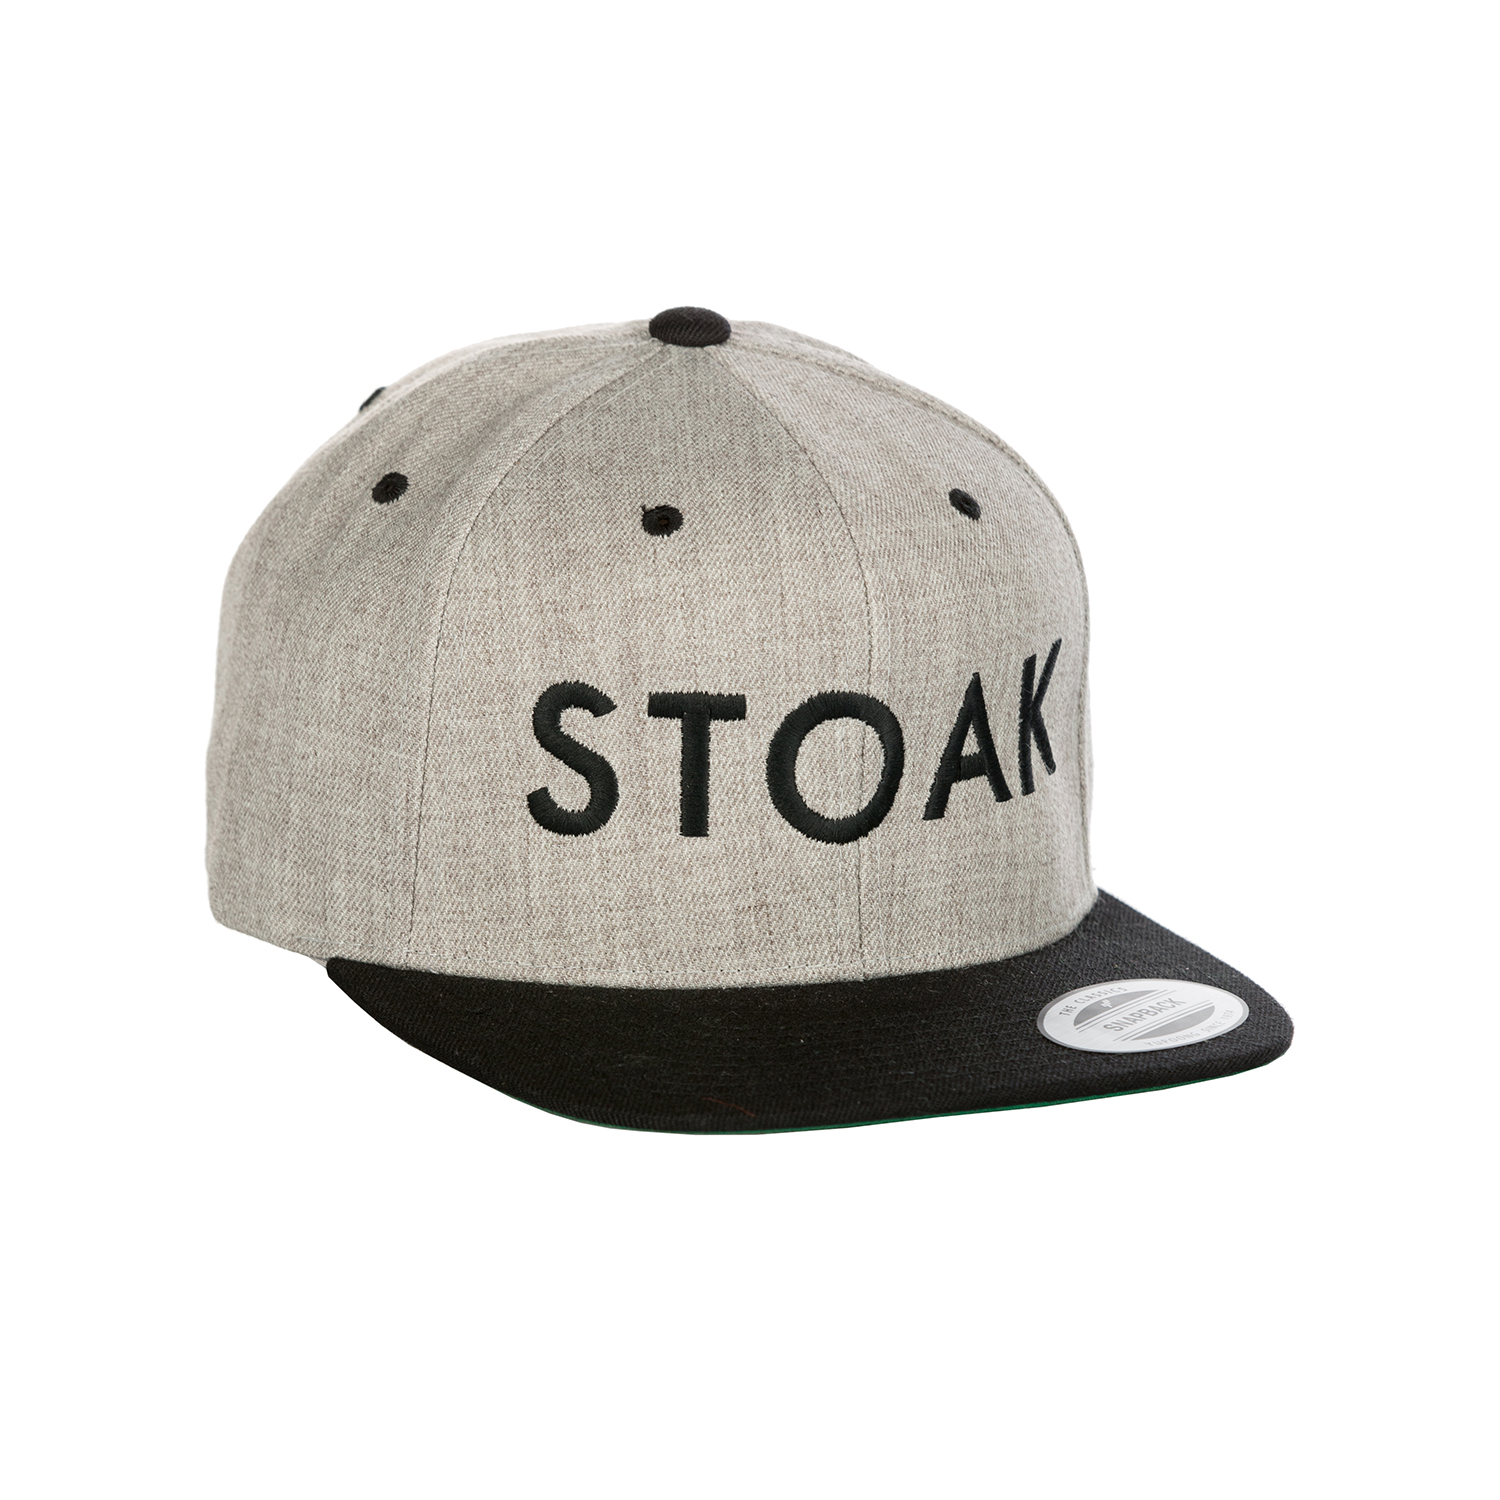 STOAK BLACK STONE Cap